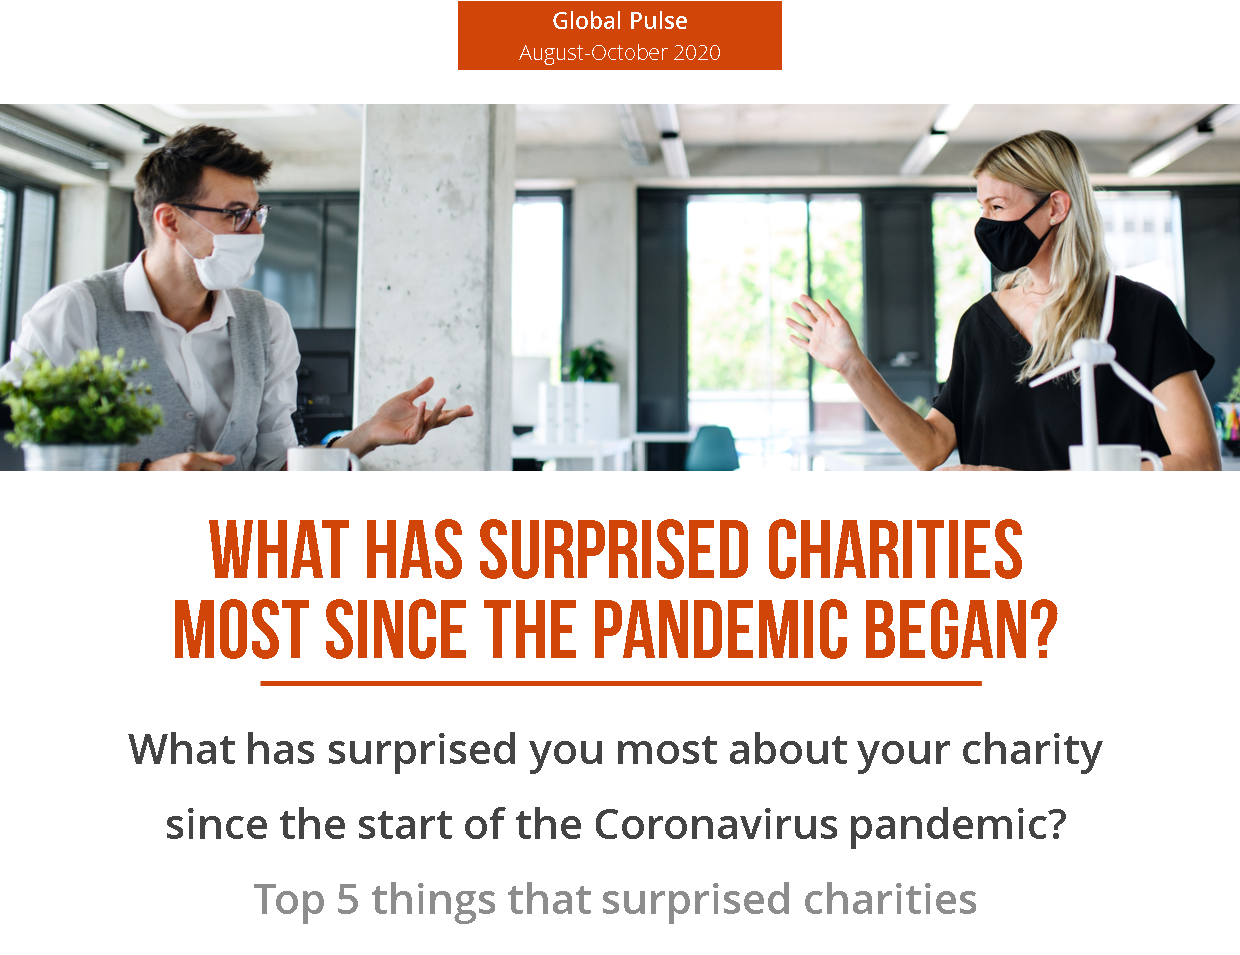 What has surprised charities the most